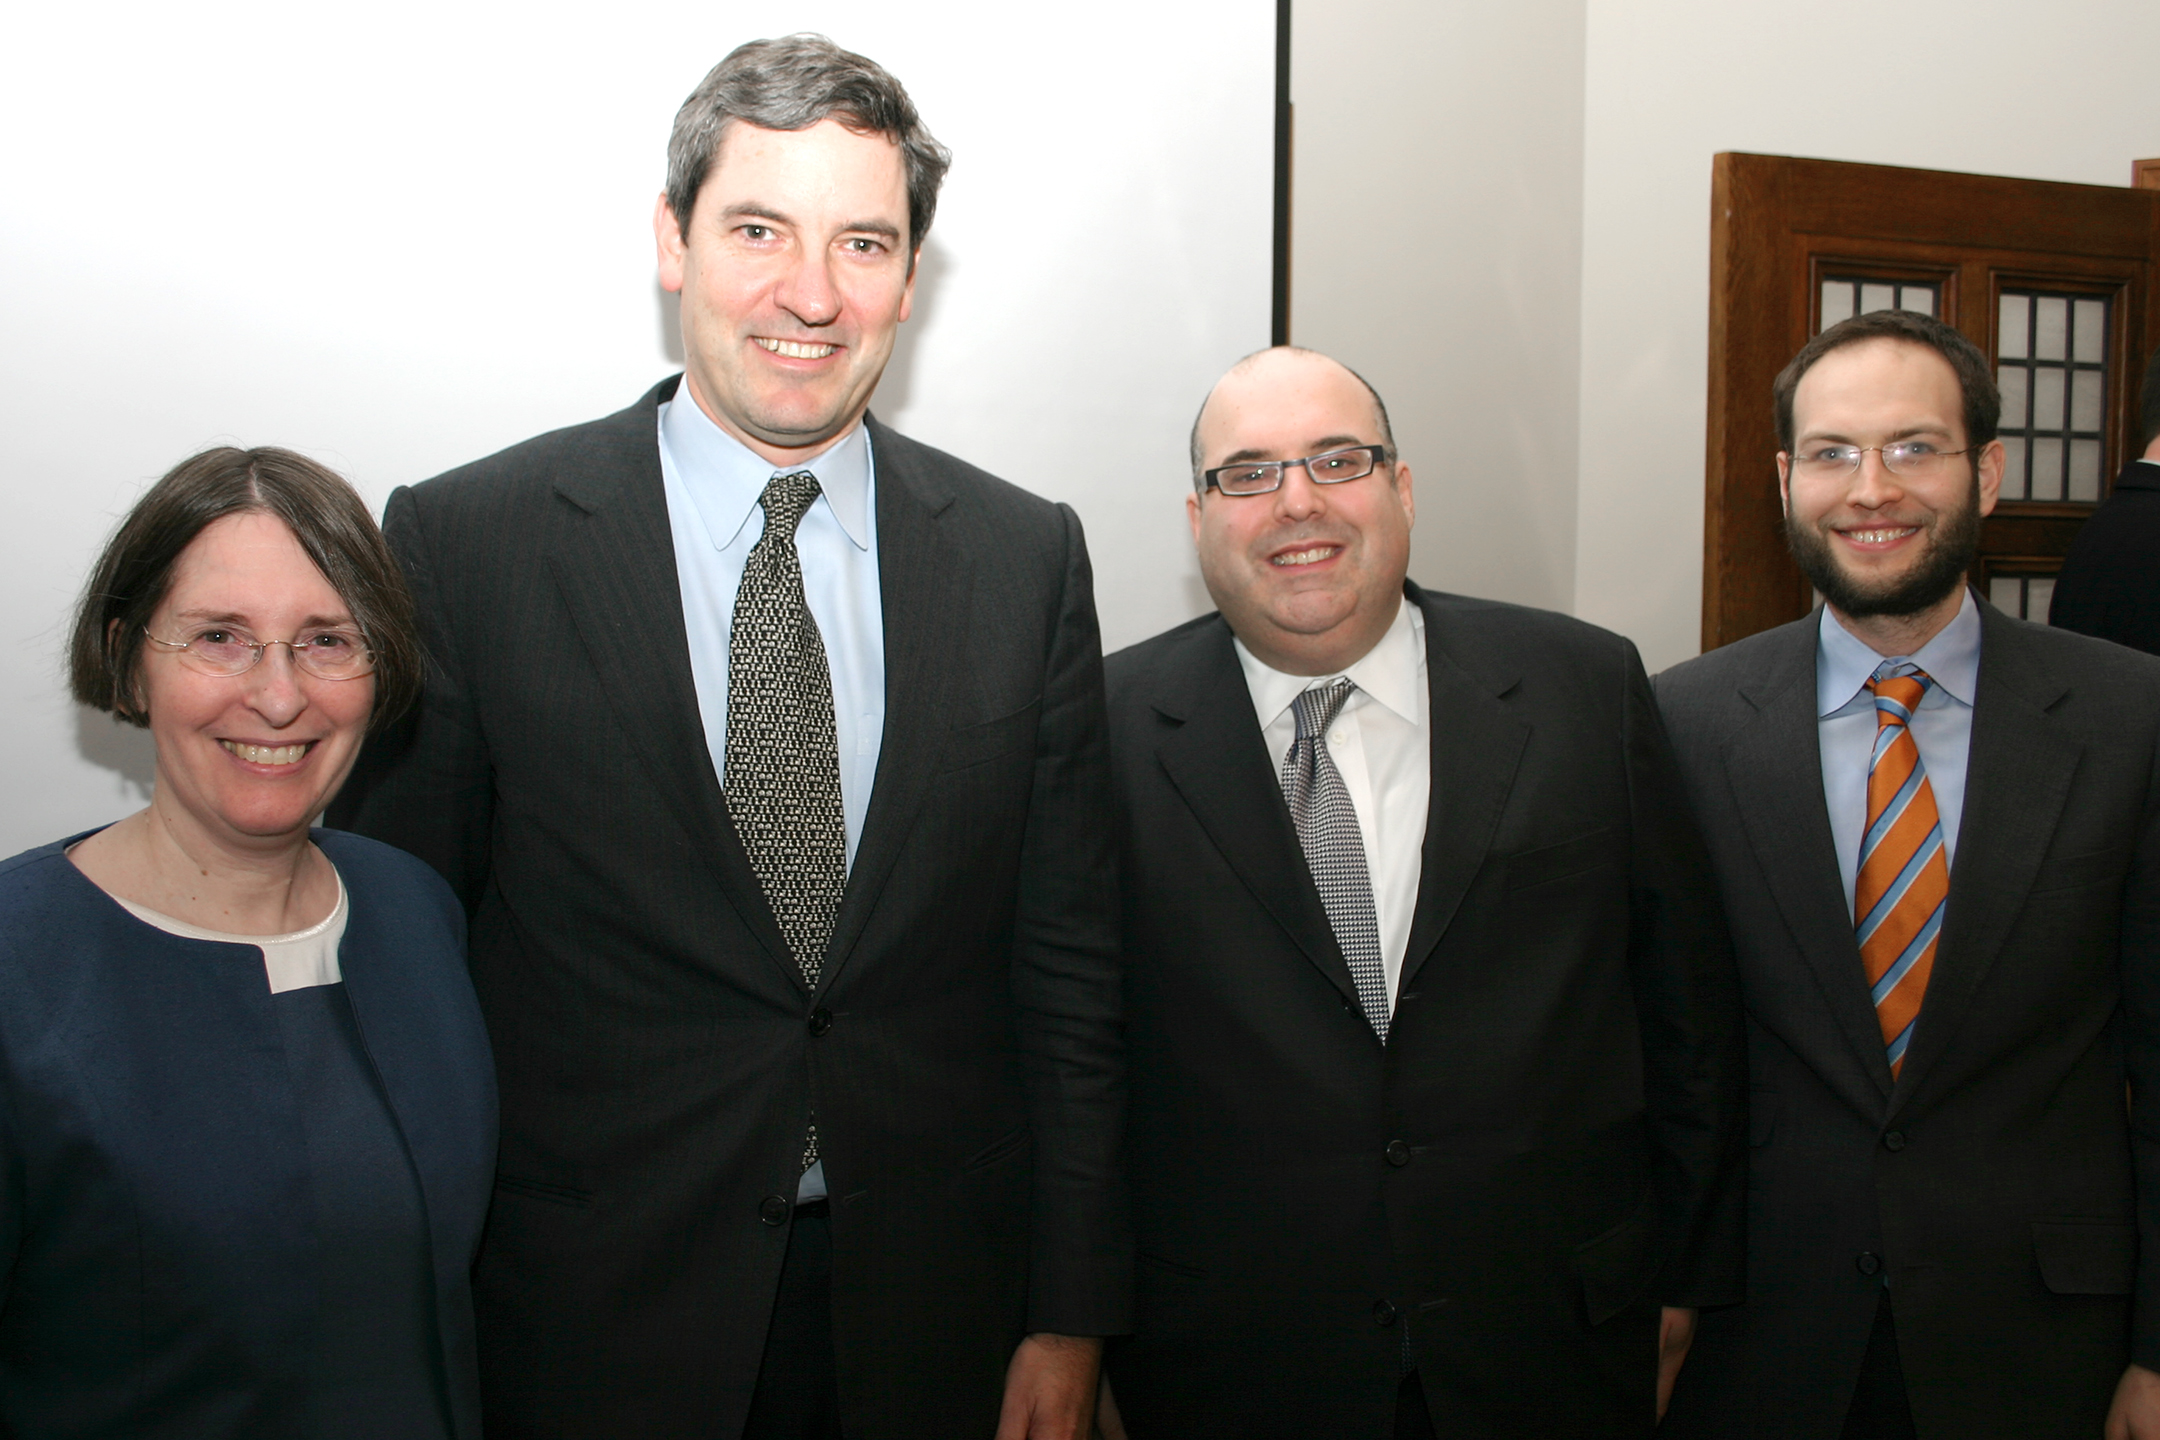 YLS Prof. and Center Dir. Roberta Romano '80, Eric S. Robinson '83, Mitchell Presser '89, and YLS Prof. Yair Listokin '05